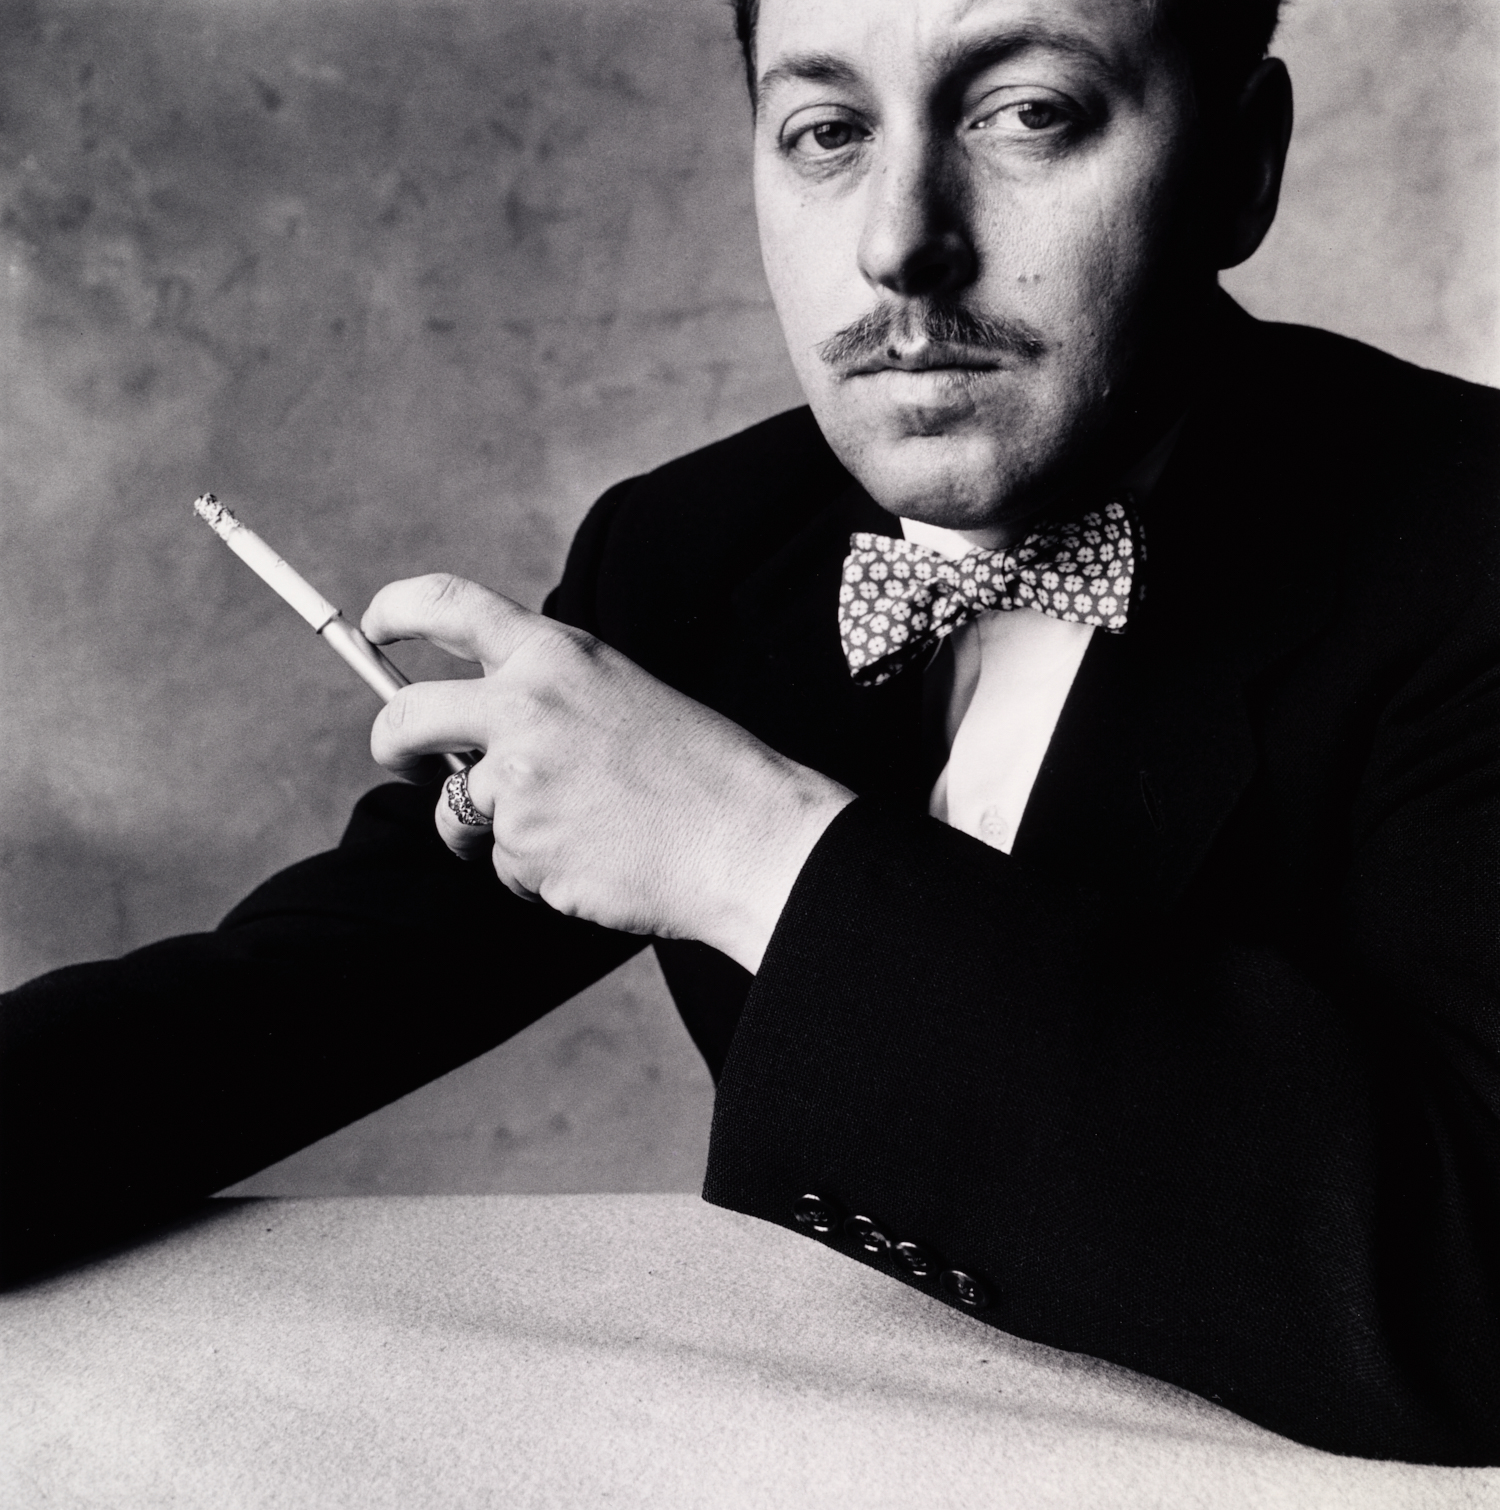 Tennessee Williams , New York, 1951 Gelatin silver print © Condé Nast